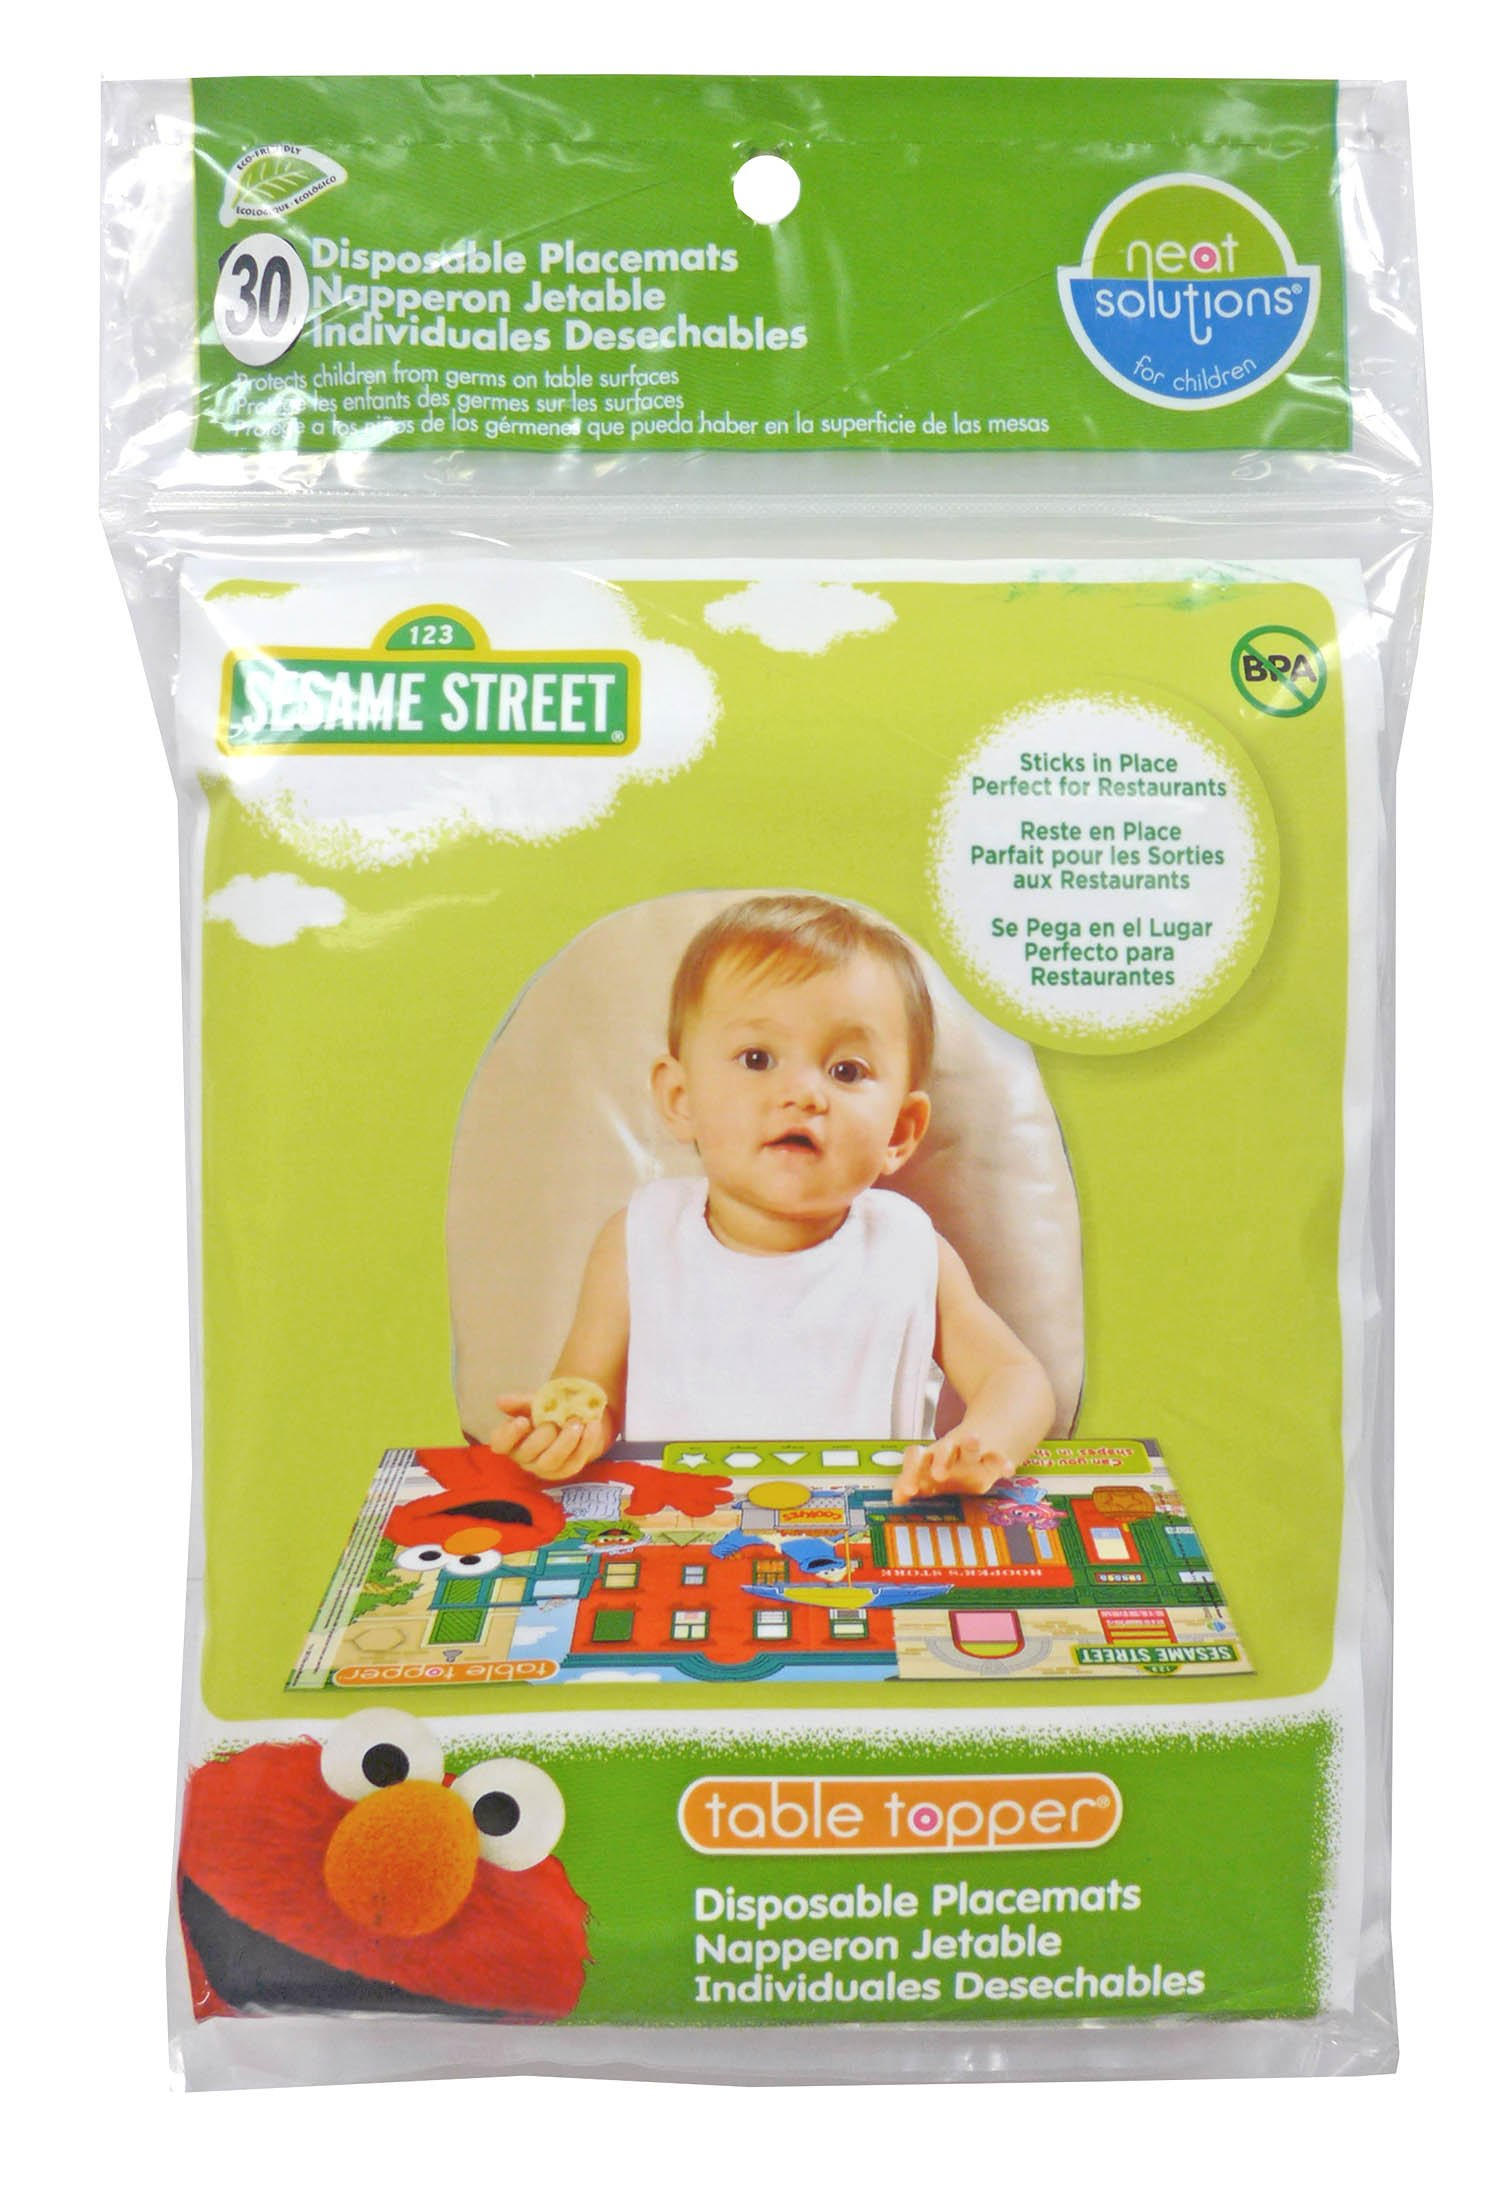 Neat Solutions Sesame Street Table Topper Disposable Stick-in-Place Placemats - 30 Count by Sesame Street